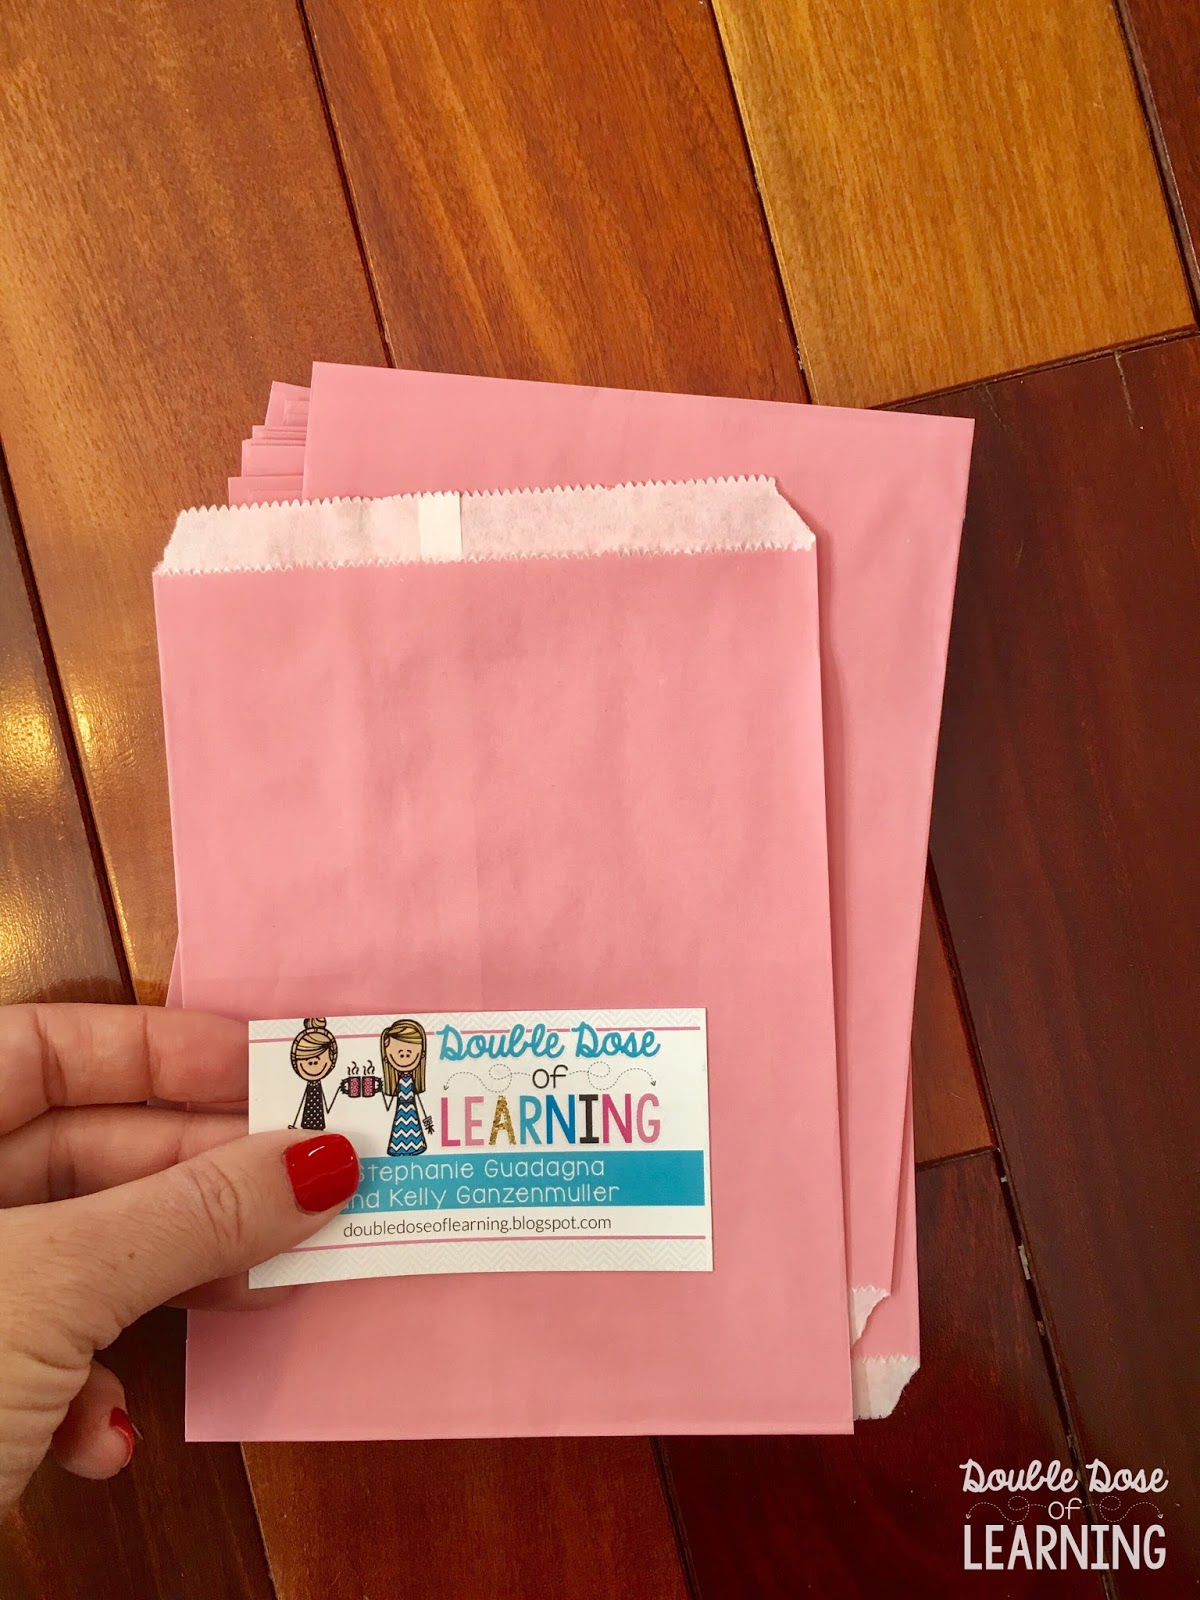 Double Dose of Learning: Sweeten up your Business Cards